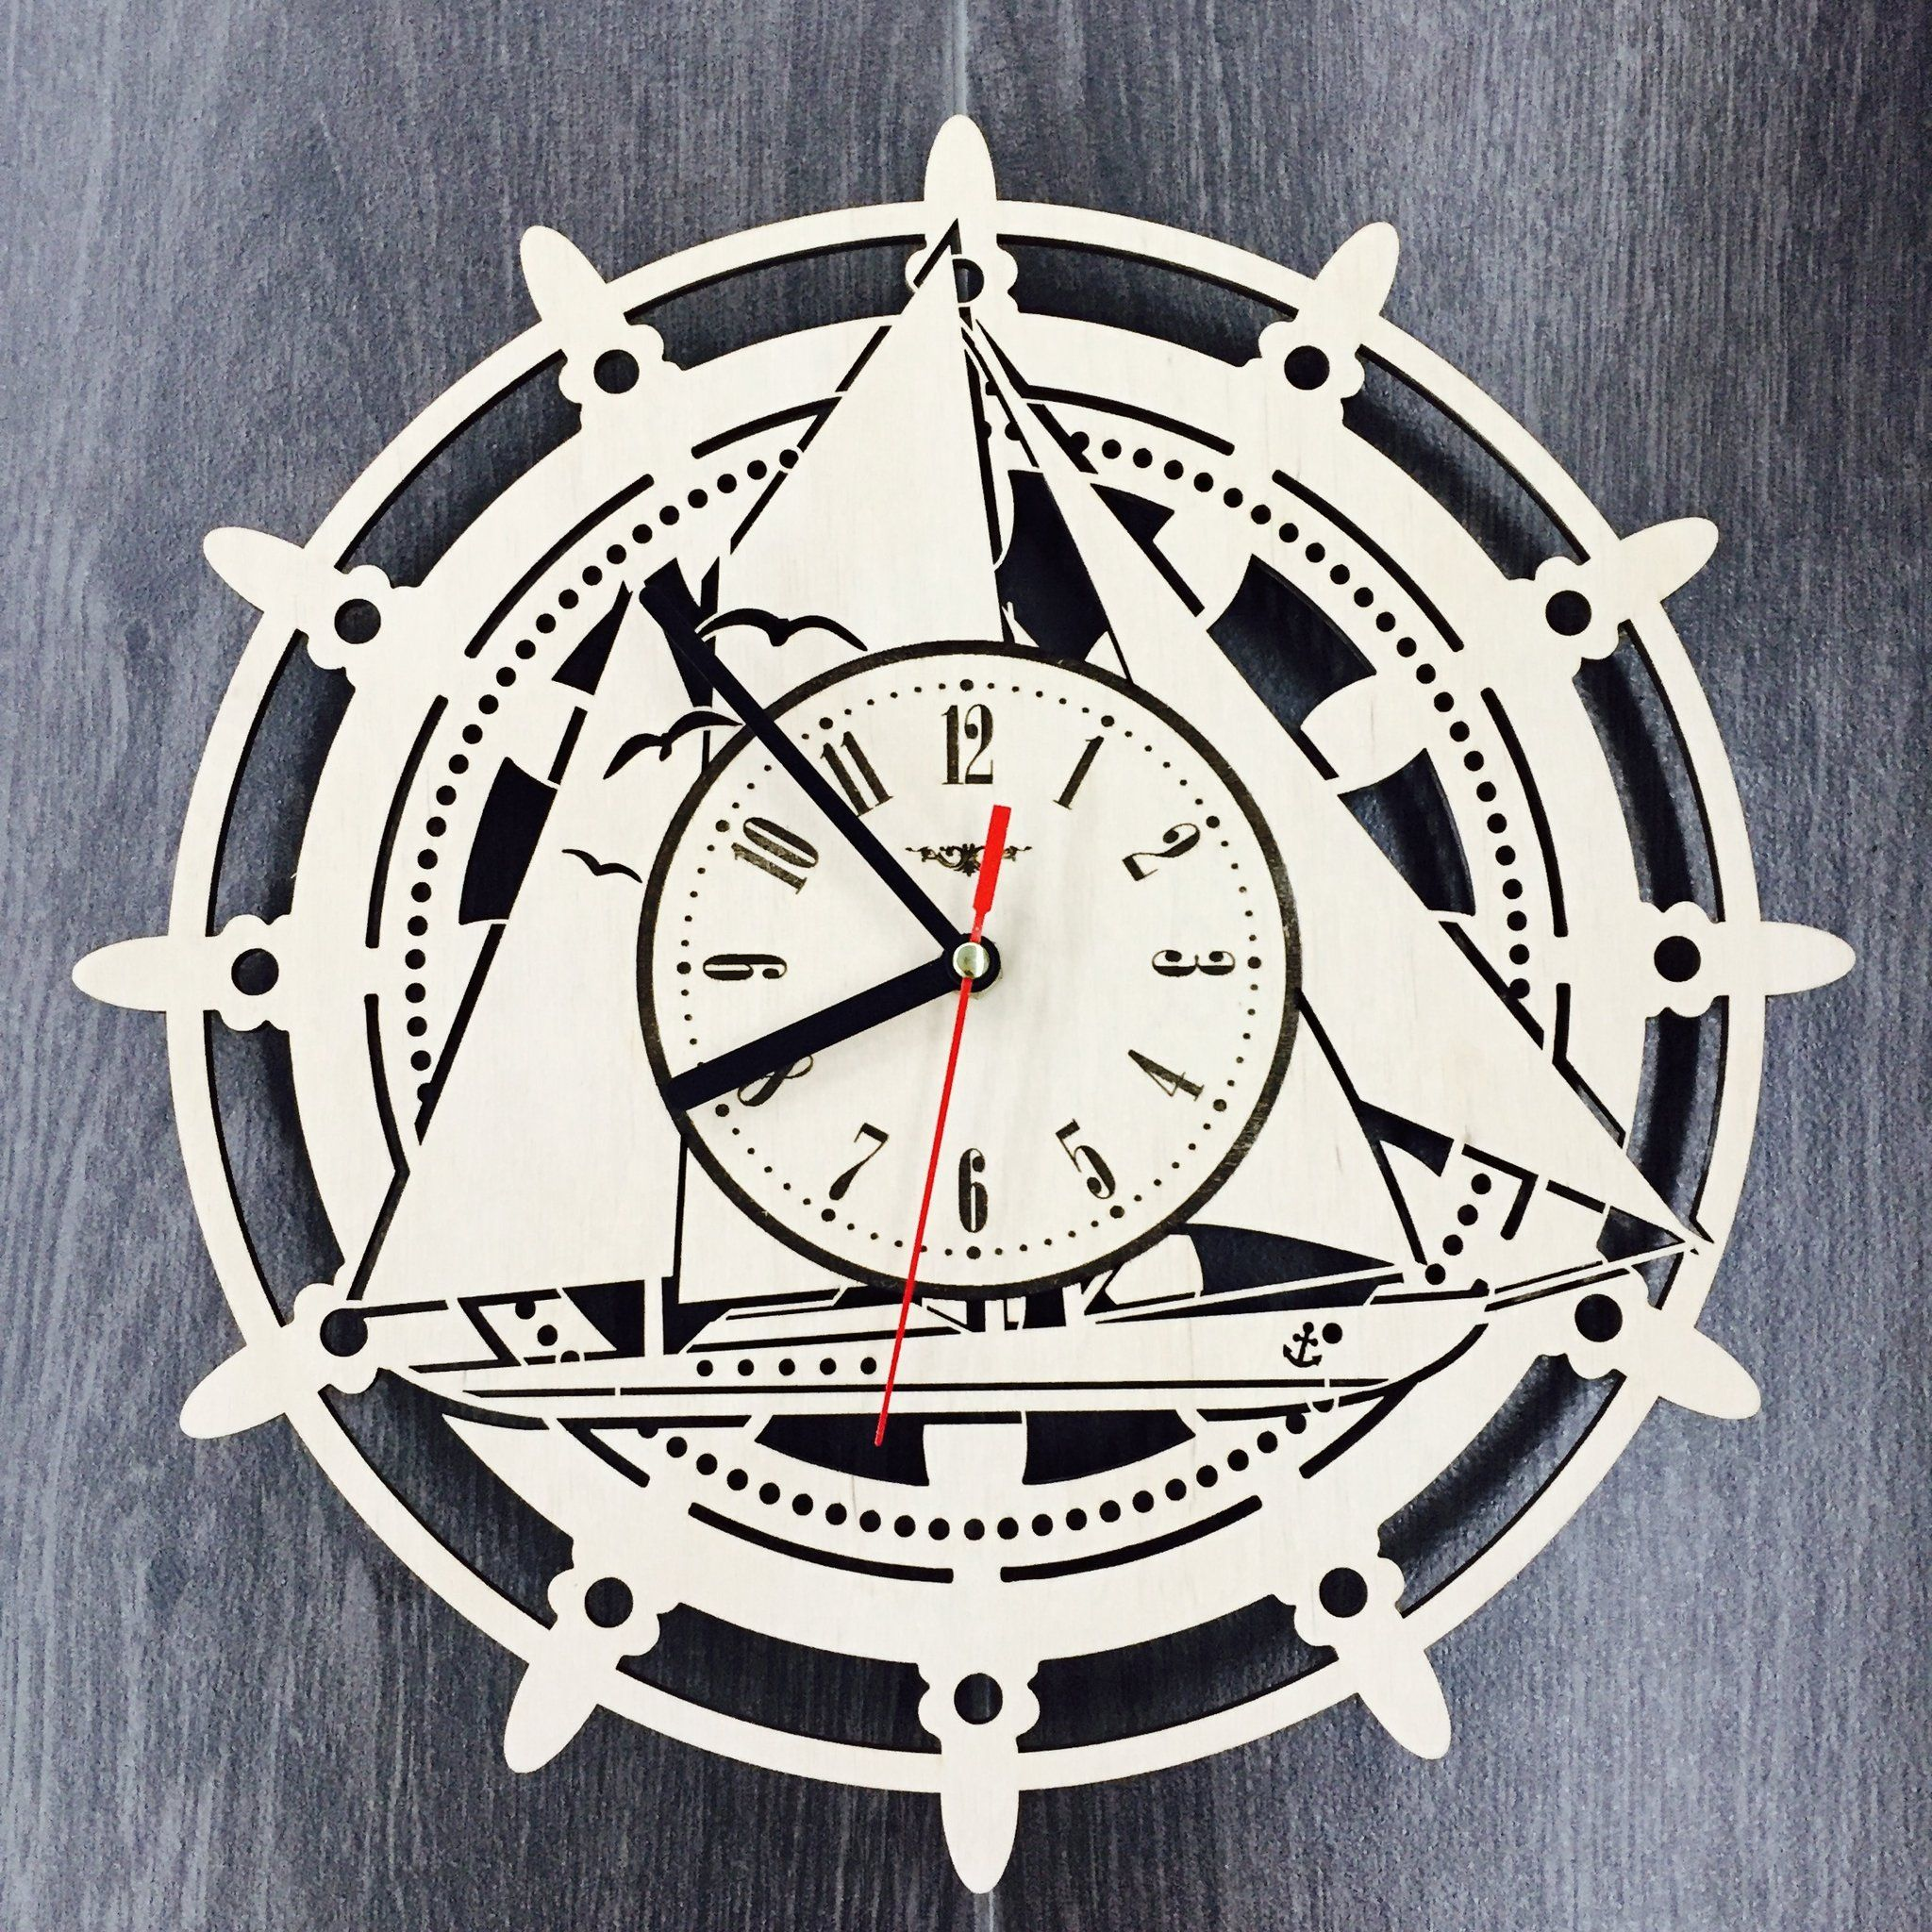 Steering Wheel Wall Wood Clock 31 99 Size 12 In 30 Cm Really Cool Gift And Unique Home Decoration Can Be Pers Clock Wall Decor Unique Wall Clocks Clock